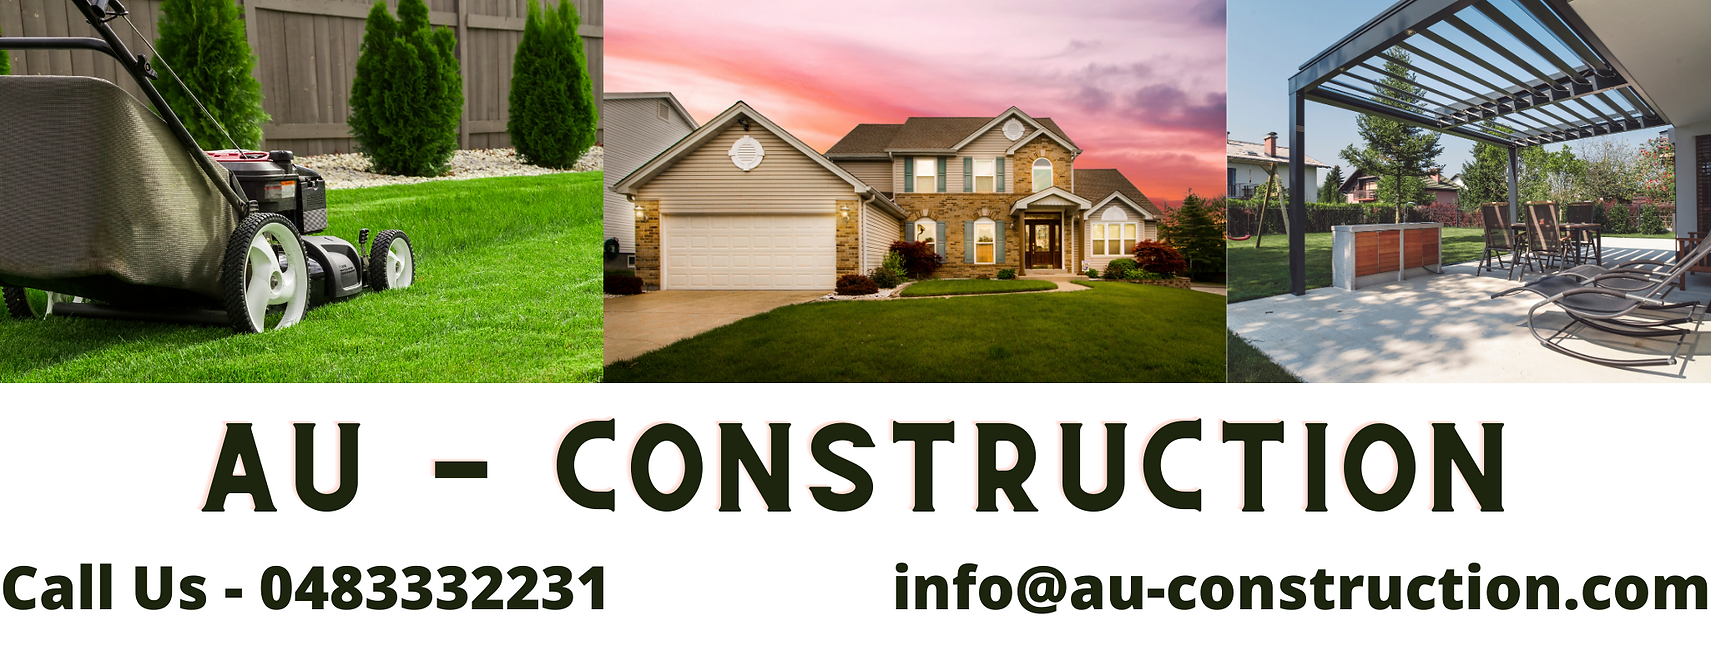 AU - Construction Main